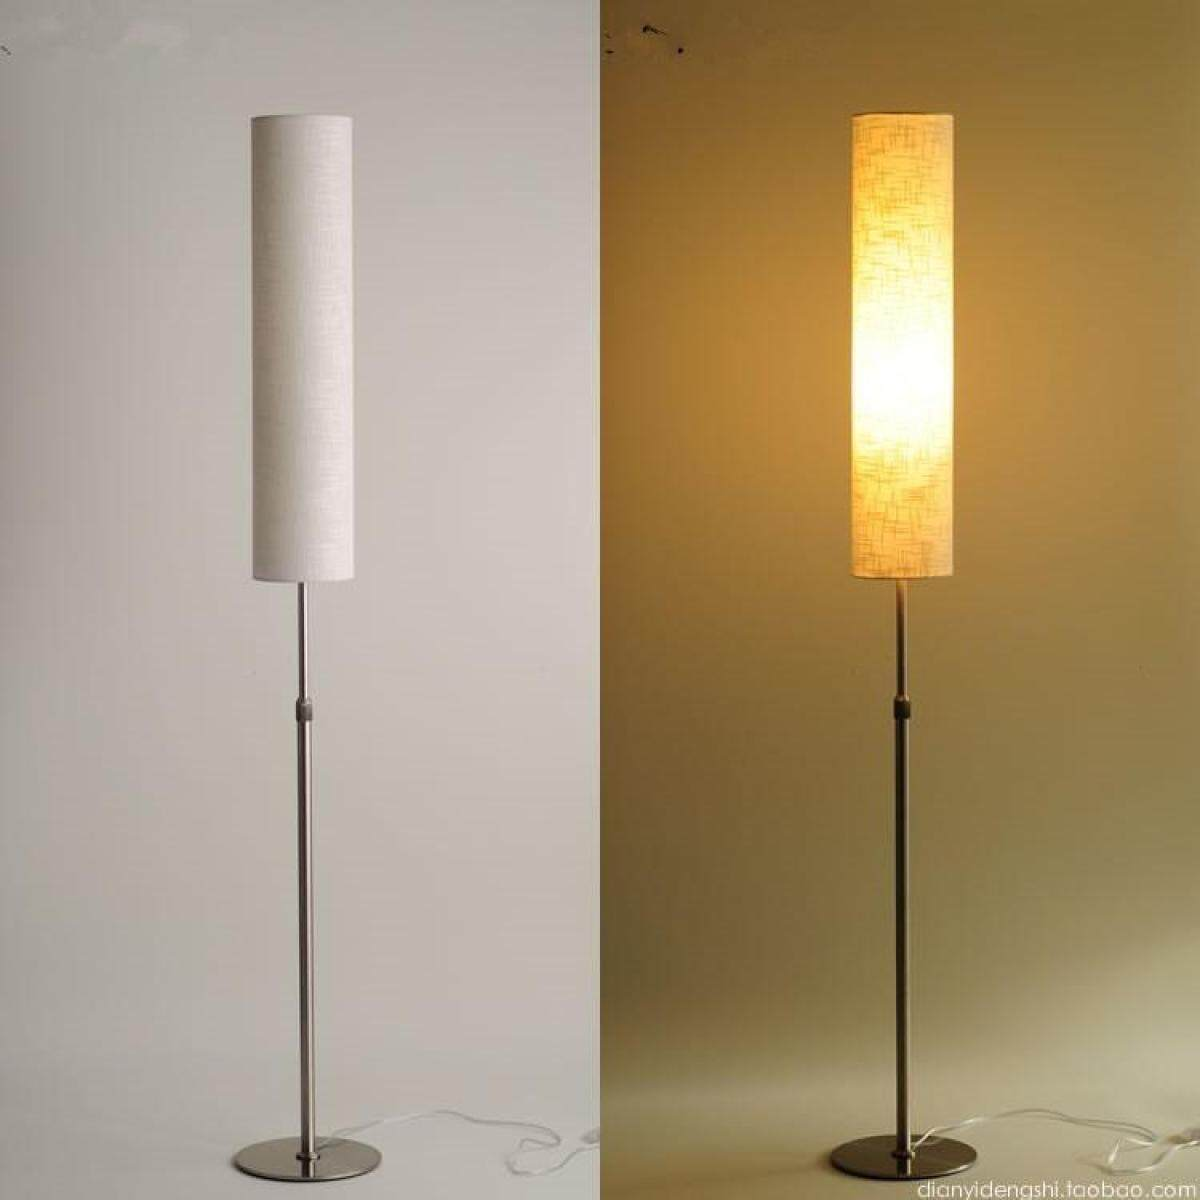 LED Floor Lamp Nordic Lamp Remote Adjustable Height 130-180 Cm Stainless Steel Material and Garment Vertical Indoor Lighting